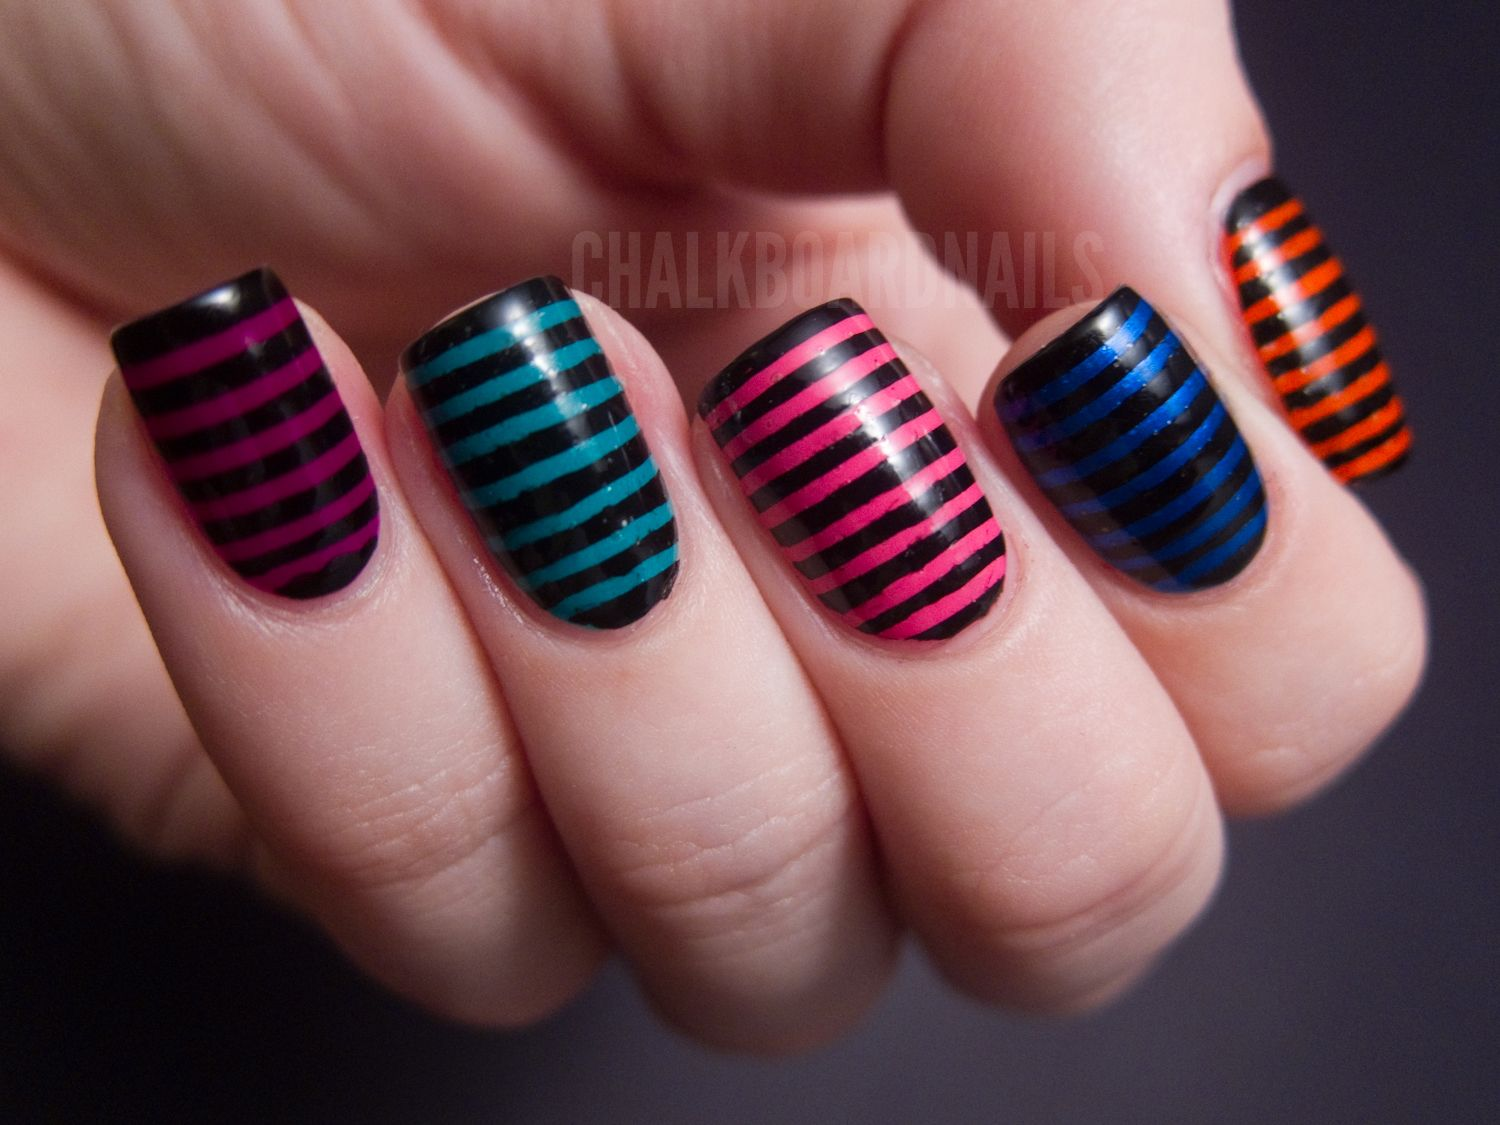 Chalkboard Nails · Stripe Nail ArtStriped ... - Chalkboard Nails Nails Art ! Pinterest Urban Decay, Urban And